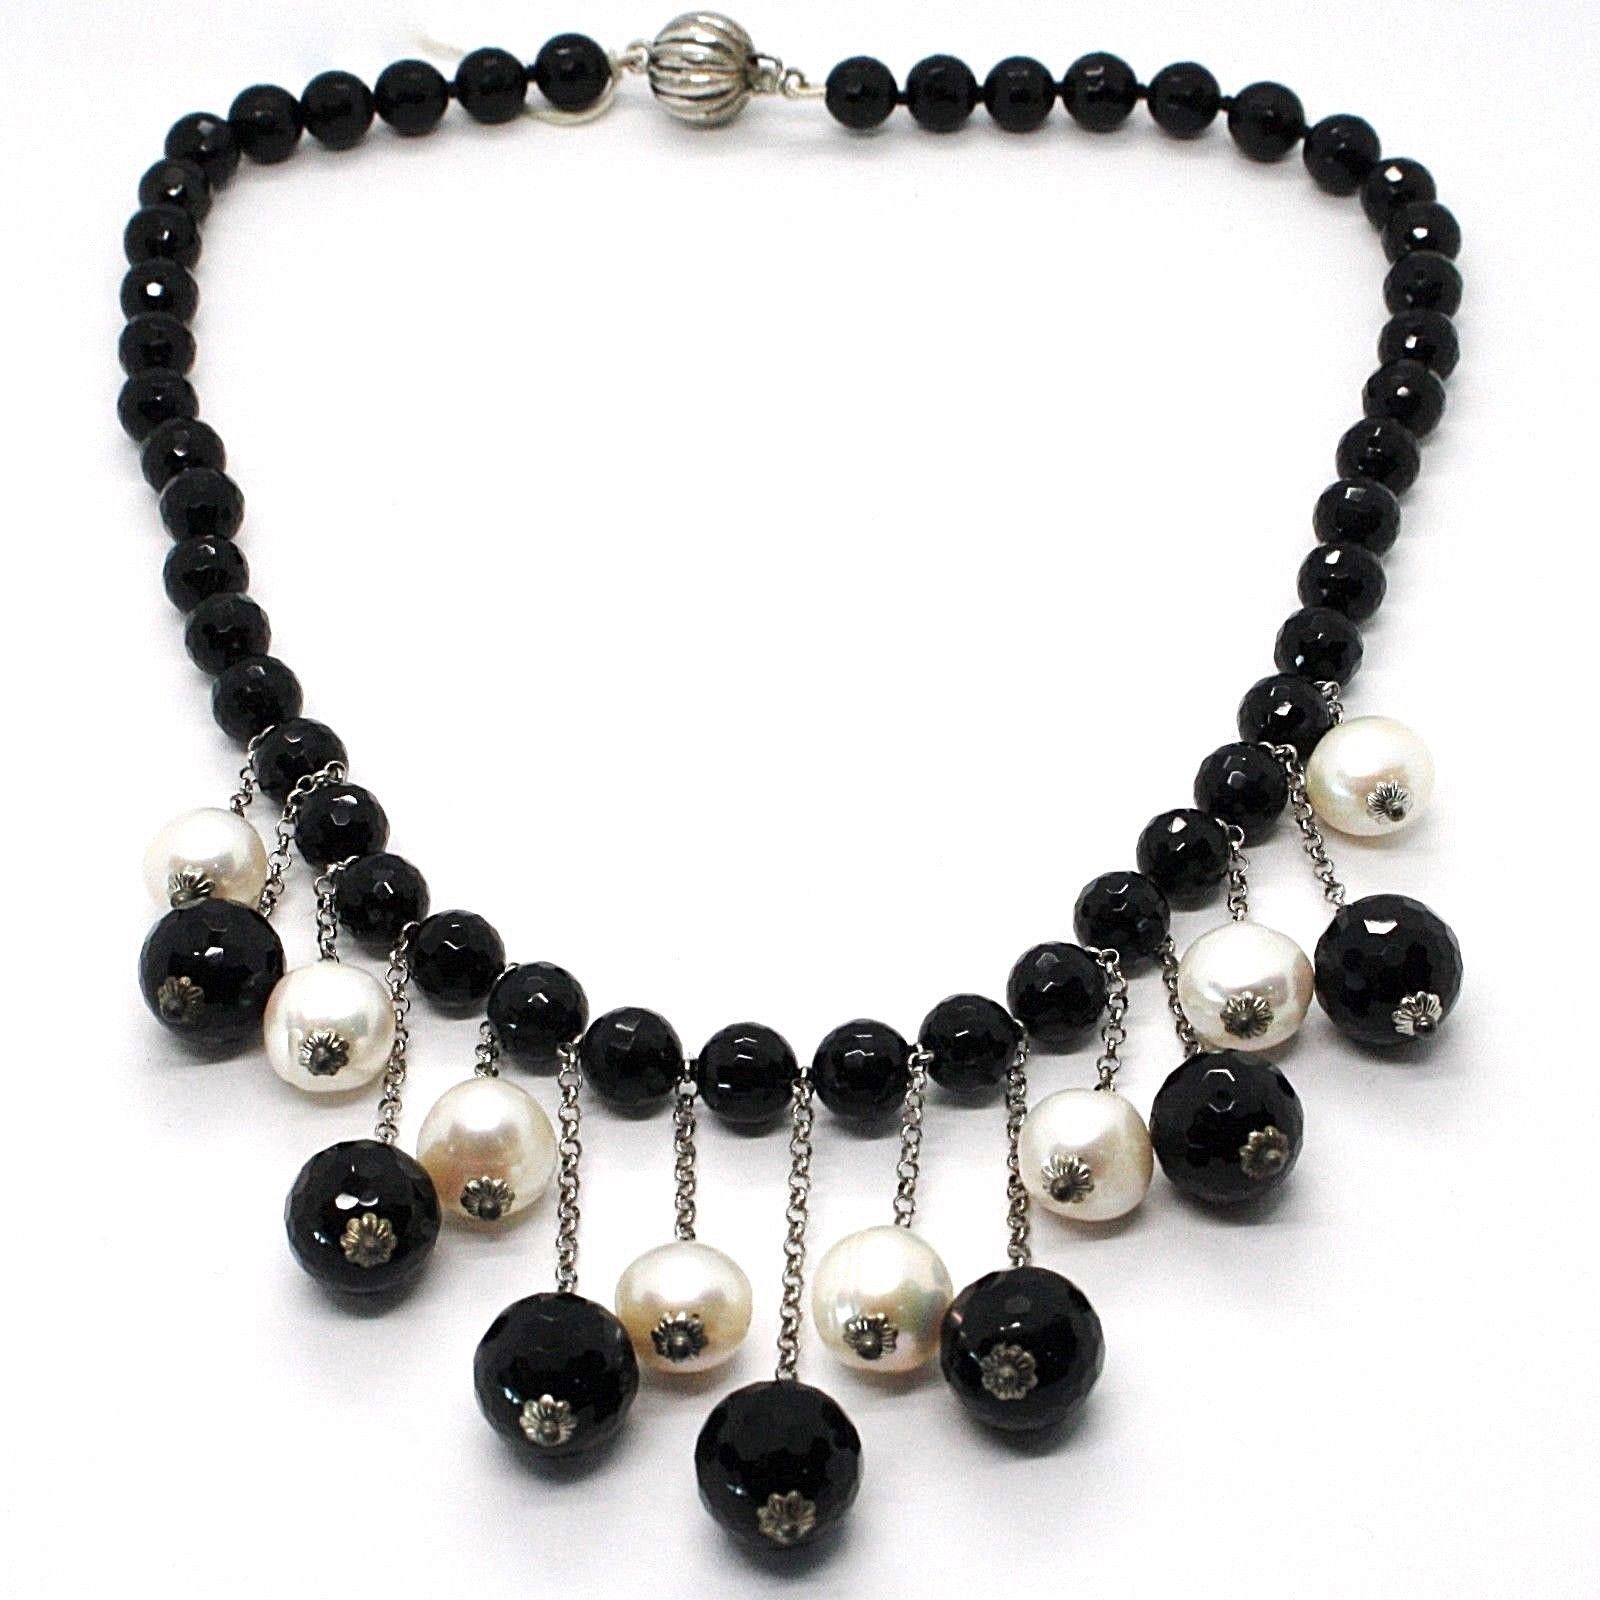 SILVER 925 NECKLACE, ONYX BLACK ROUND, WHITE PEARLS, FRINGE, CASCADE